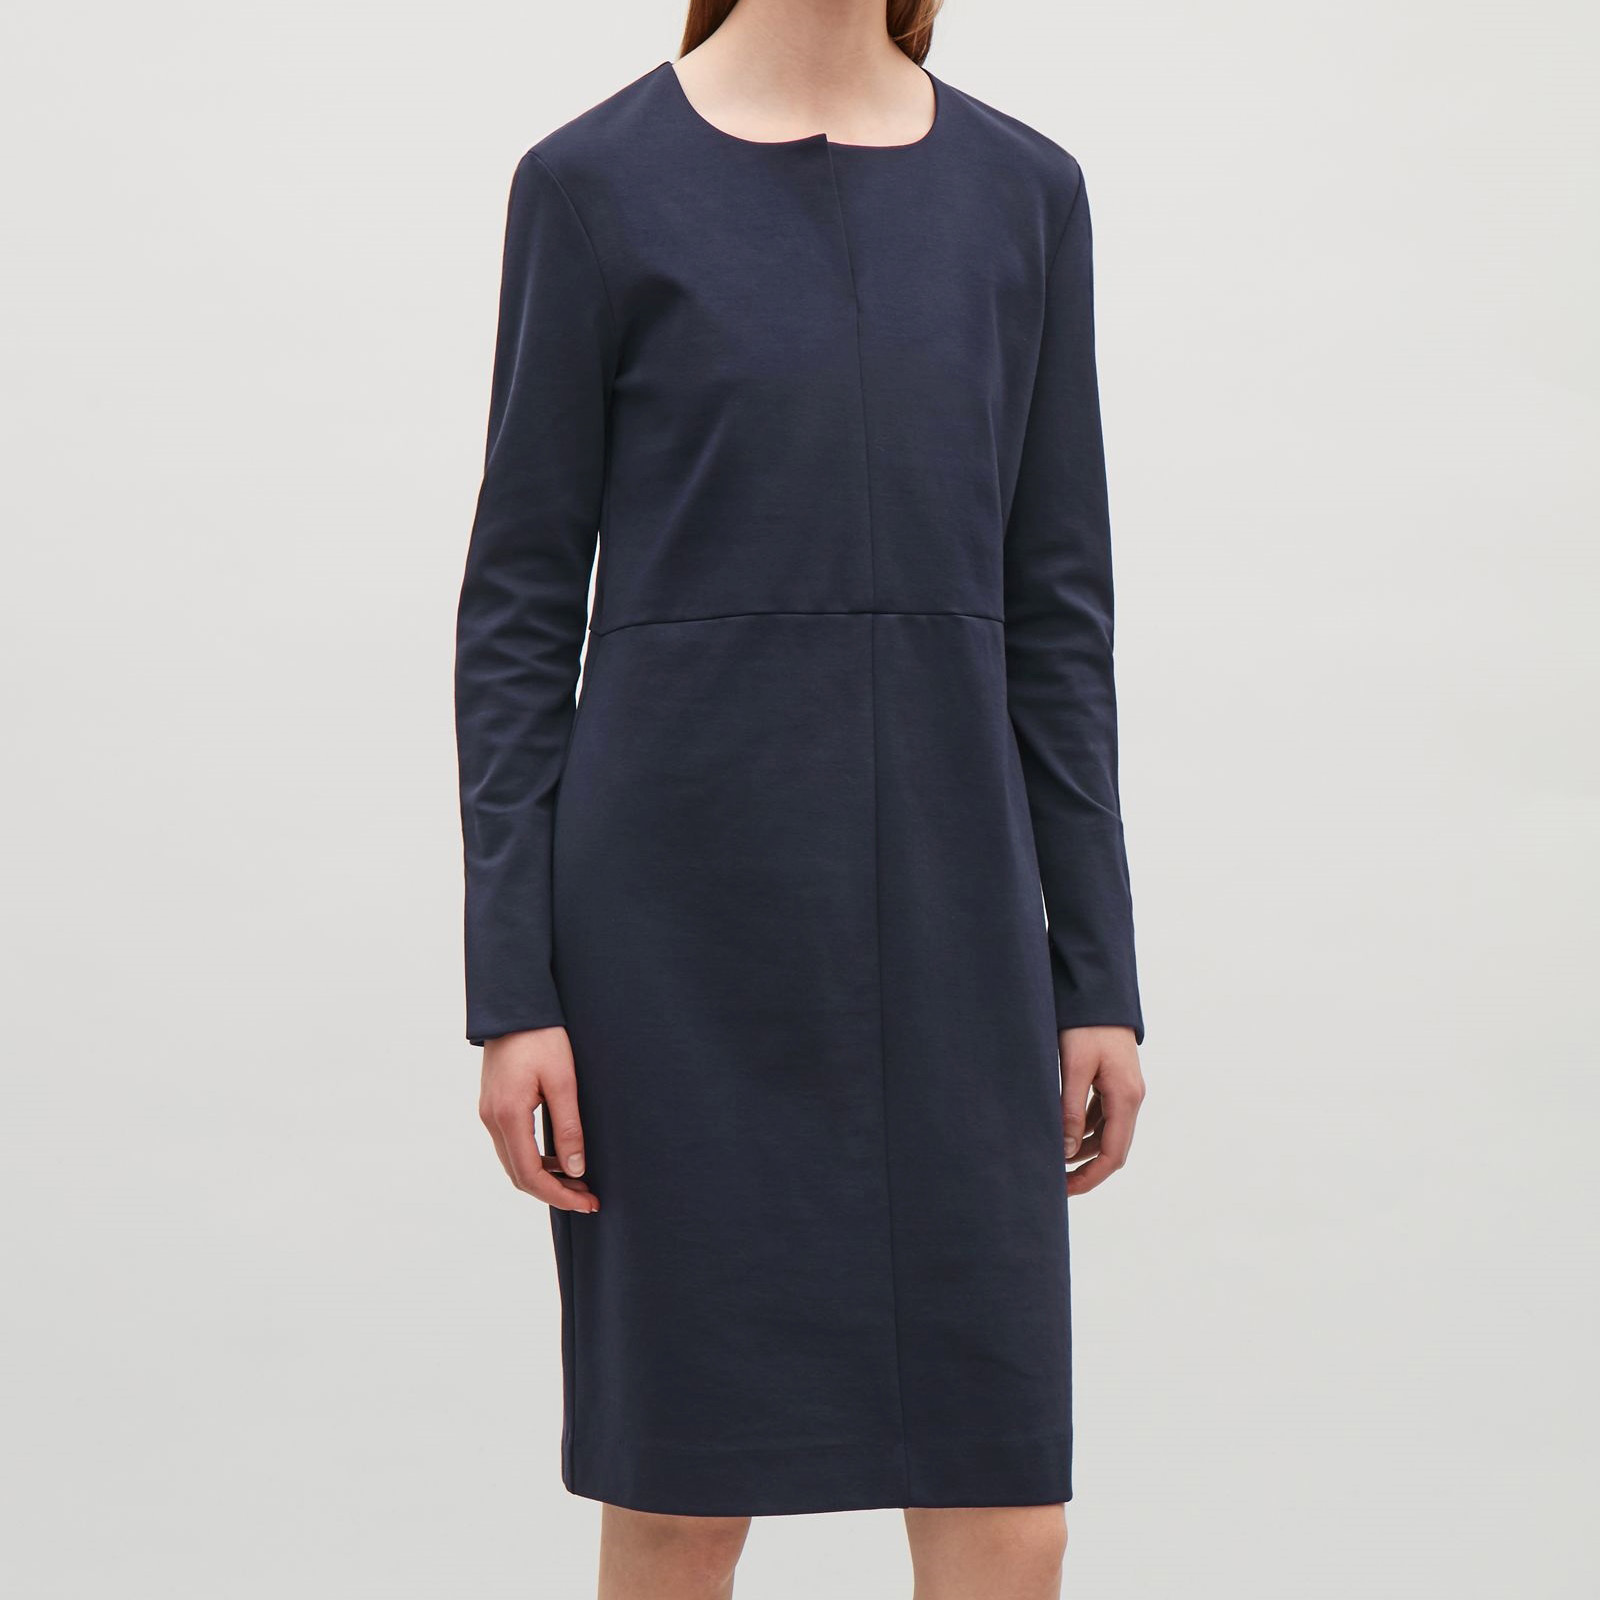 COS☆DRESS WITH TWISTED SLEEVE SEAMS / dark blue